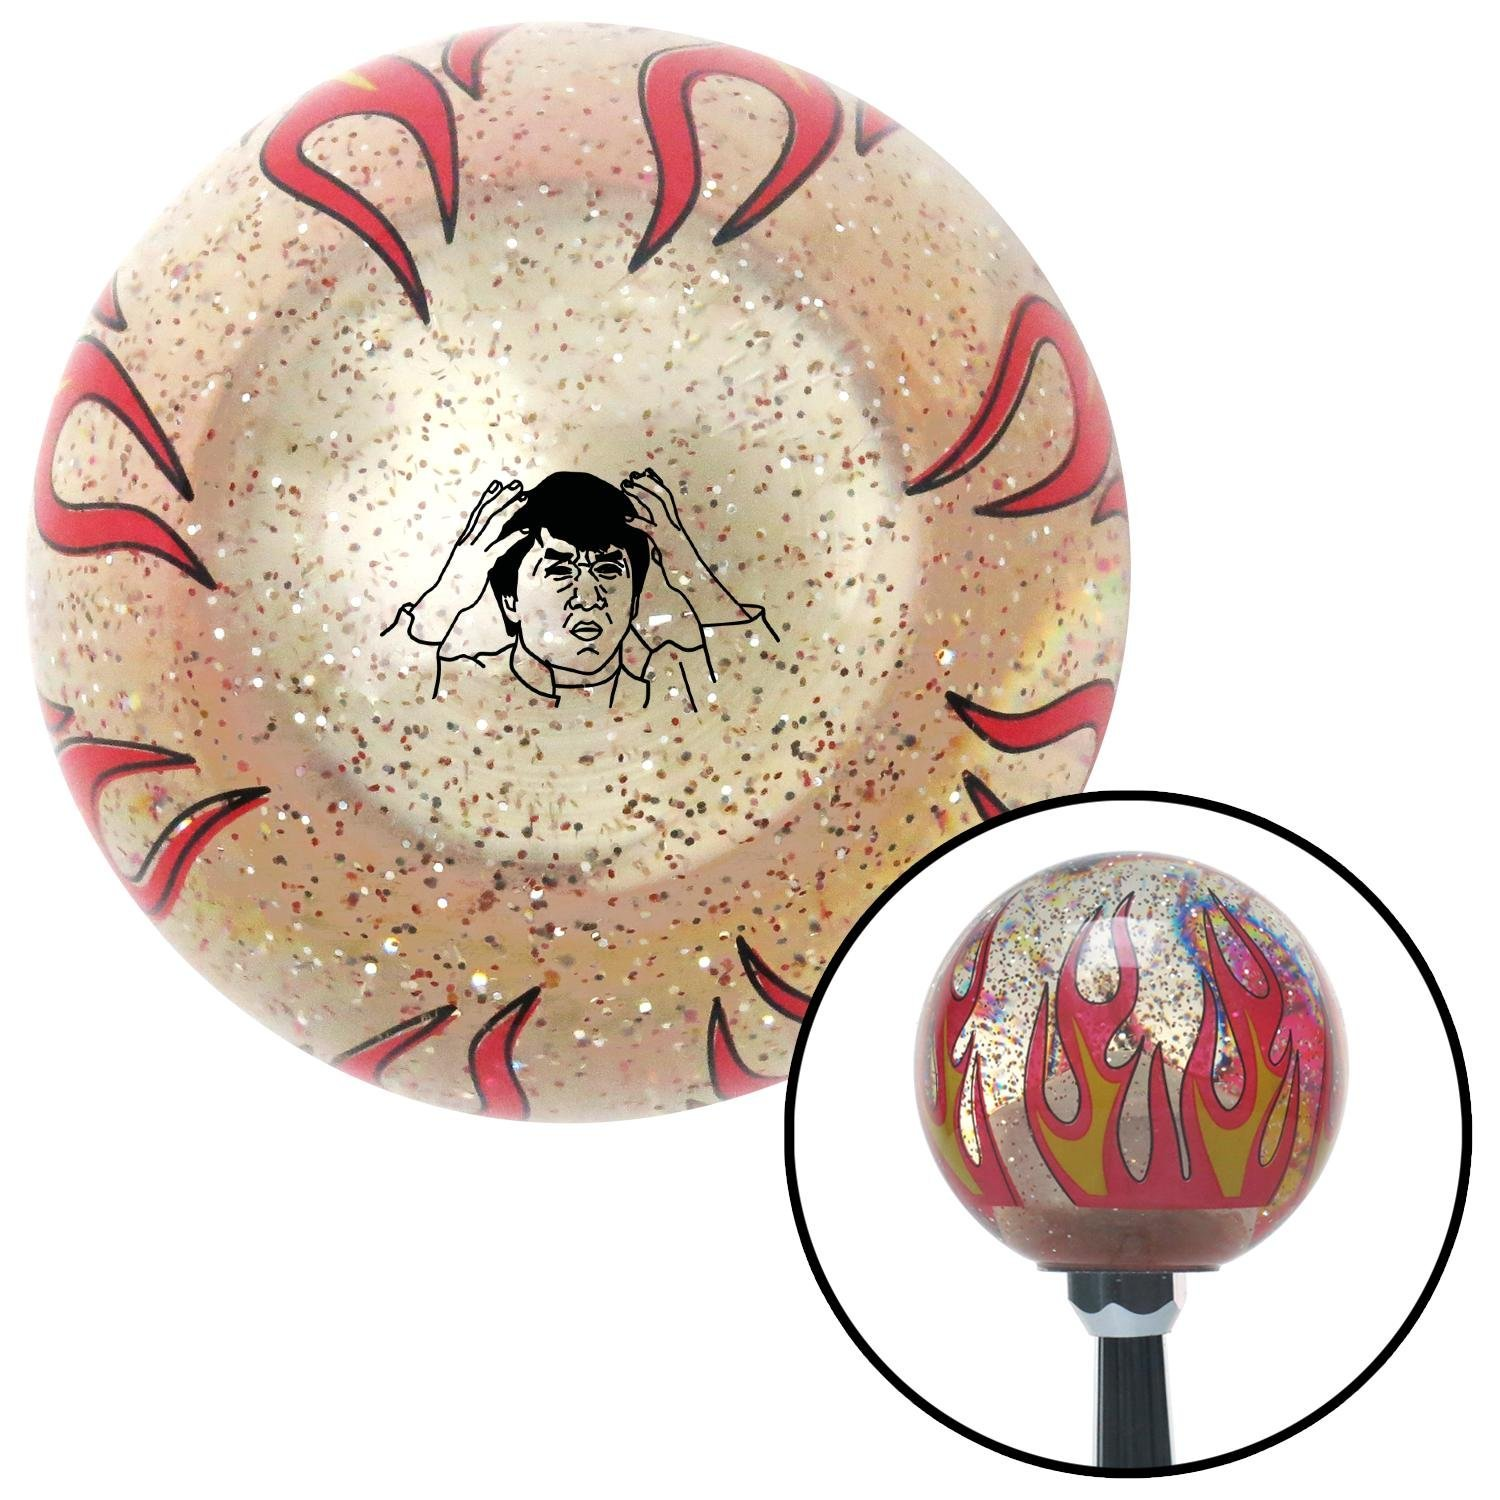 American Shifter 295381 Shift Knob Black Jackie Chan Clear Flame Metal Flake with M16 x 1.5 Insert